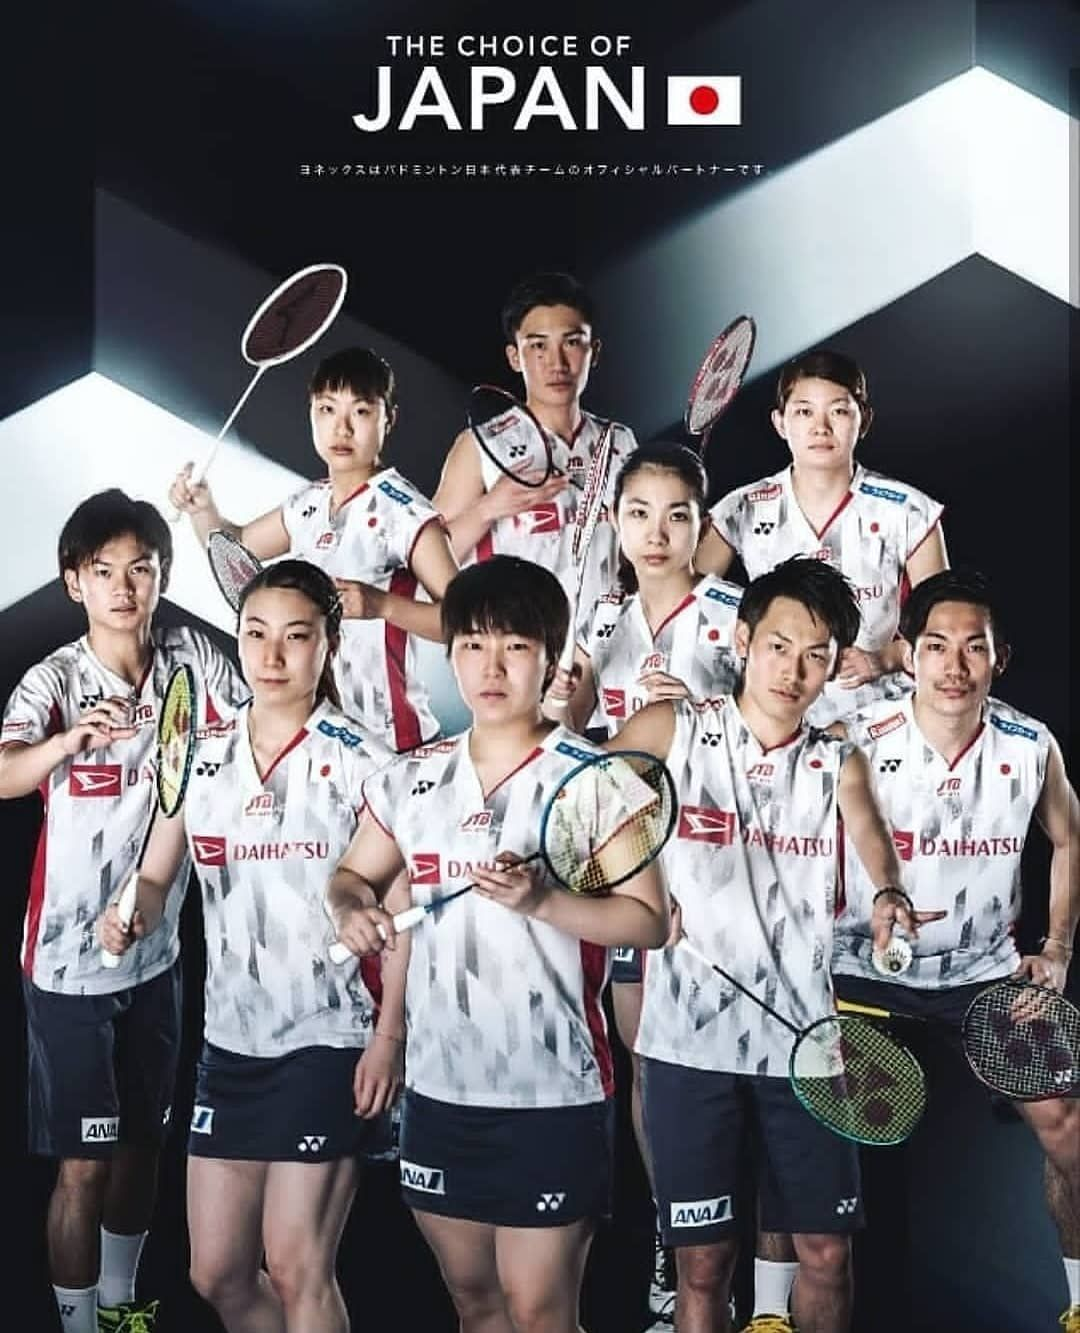 Japan Badminton Team Fanpage On Instagram Japan S Official Player List For Sudiman Cup 2019 1 Ms Kento Momota Kenta Nishimo Badminton Team Badminton Teams